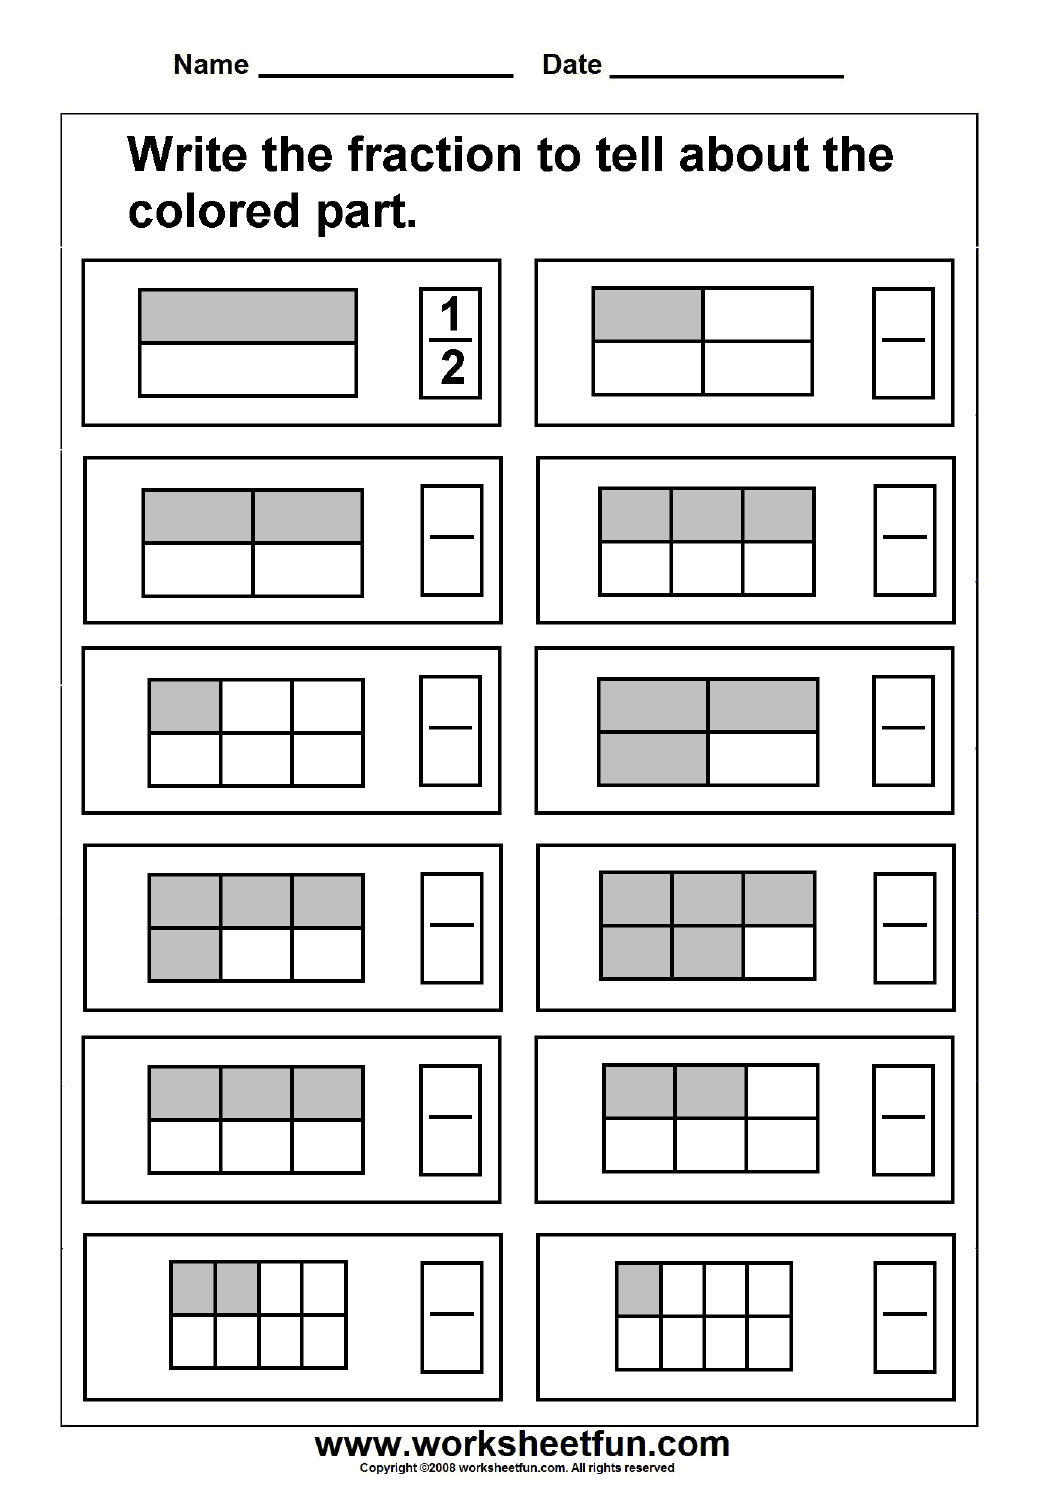 Fraction FREE Printable Worksheets Worksheetfun – Free Fraction Worksheets